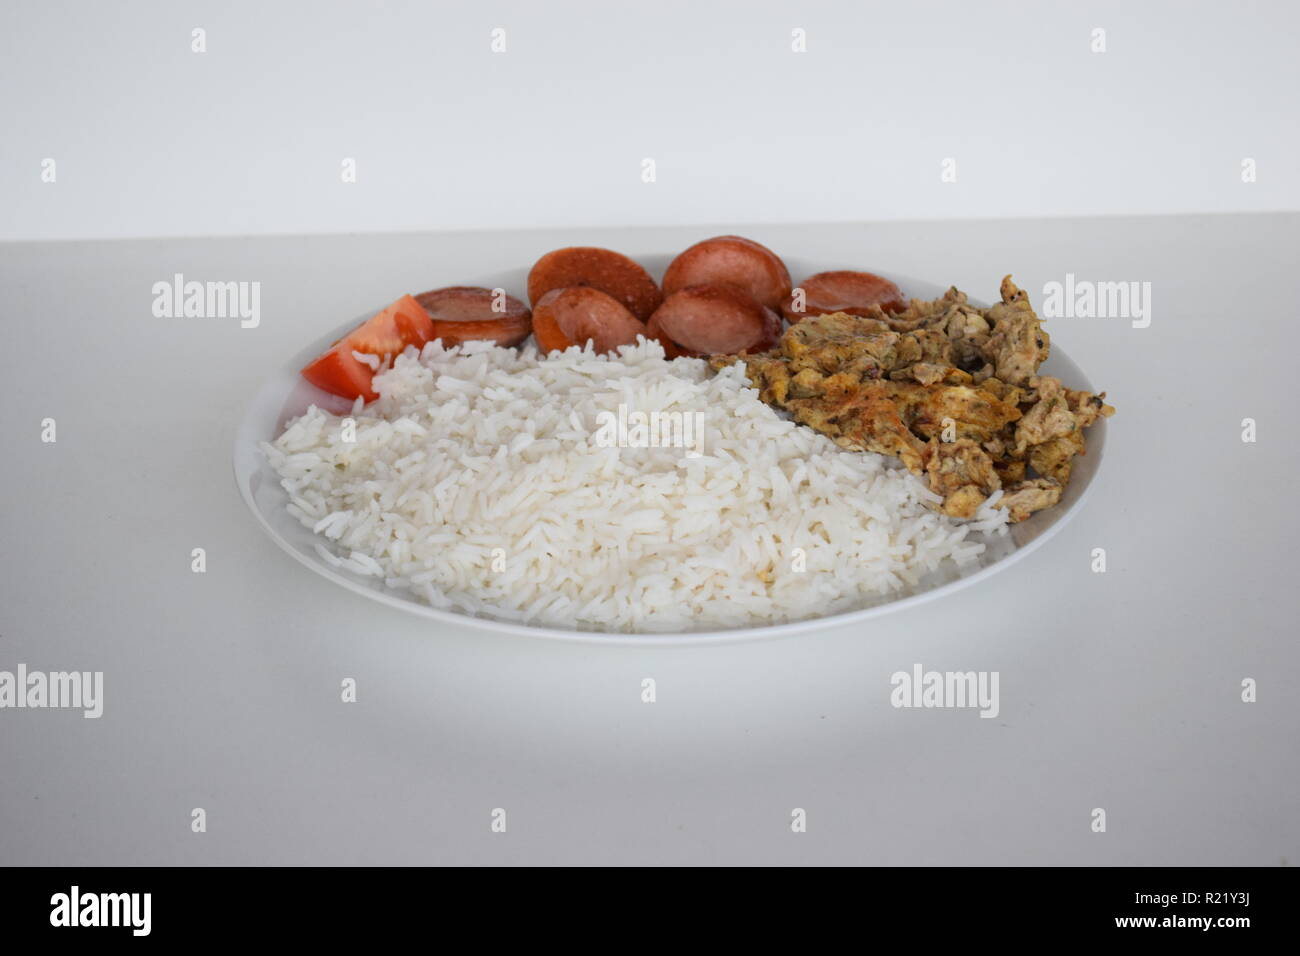 A freshly cooked breakfast of egg, Lyoner sausage, tomatoes and rice at Lety's Transient Homes Baguio, B&B. Ein frisch zubereitetes Frühstück Stock Photo